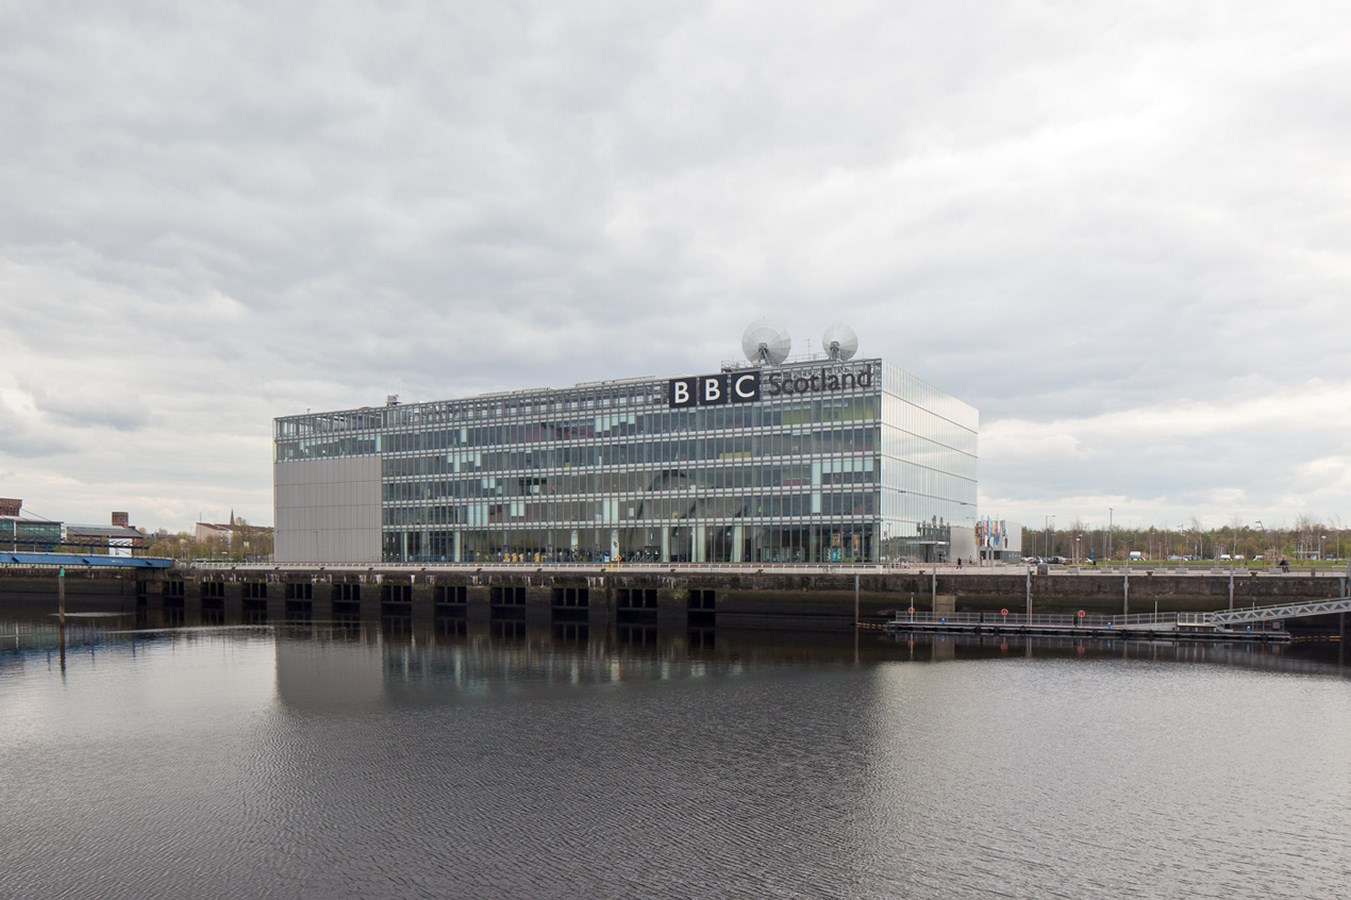 15 Projects By David Chipperfield Every Architect Must Visit! - BBC SCOTLAND HEADQUARTERS